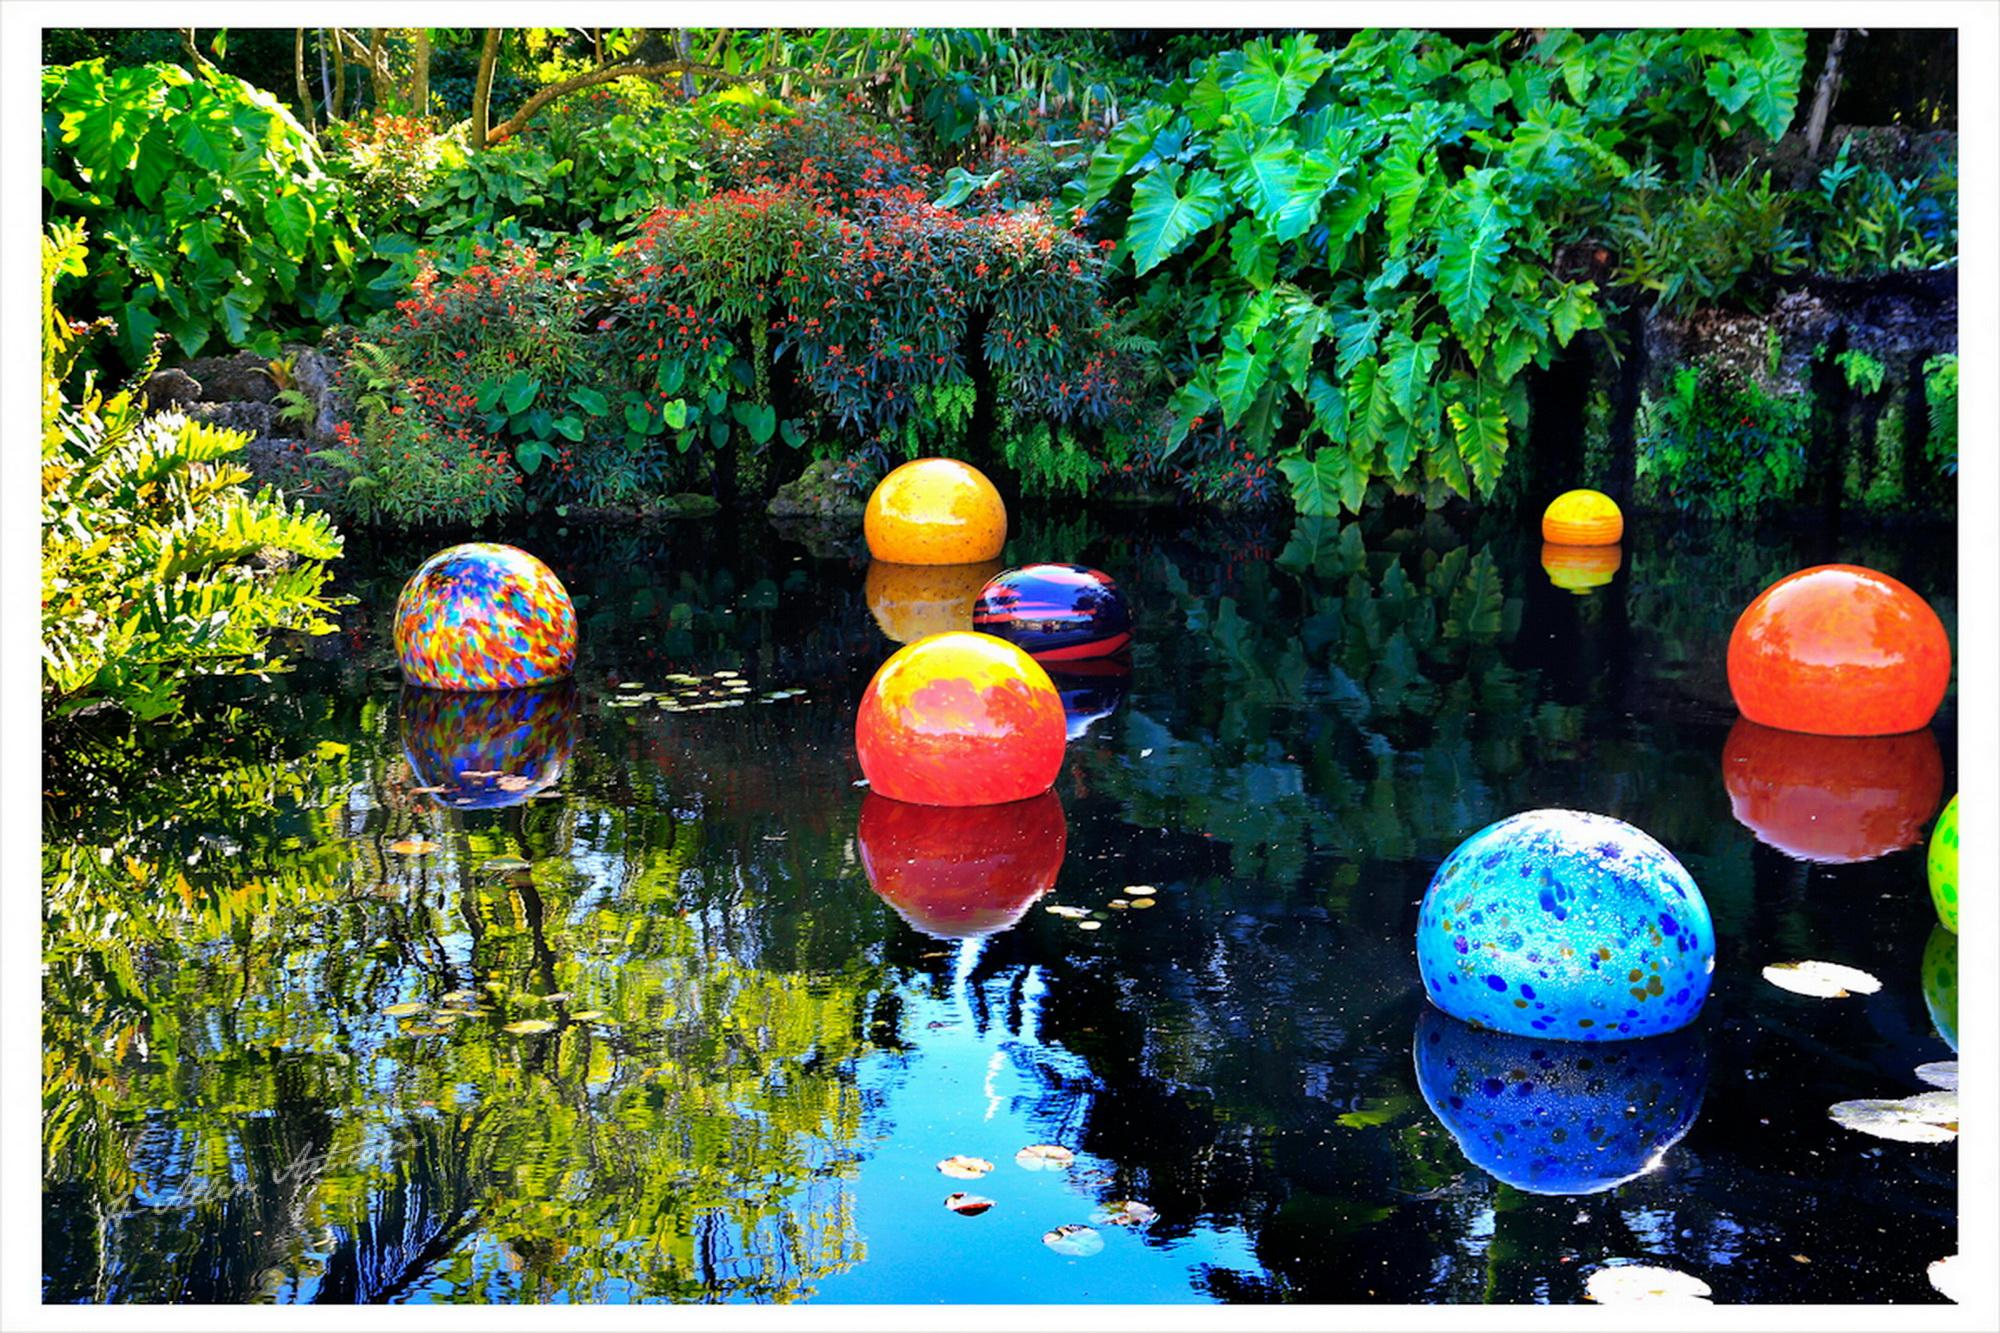 Chihuly Floats, Fairchild Gardens, Coral Gables, FL